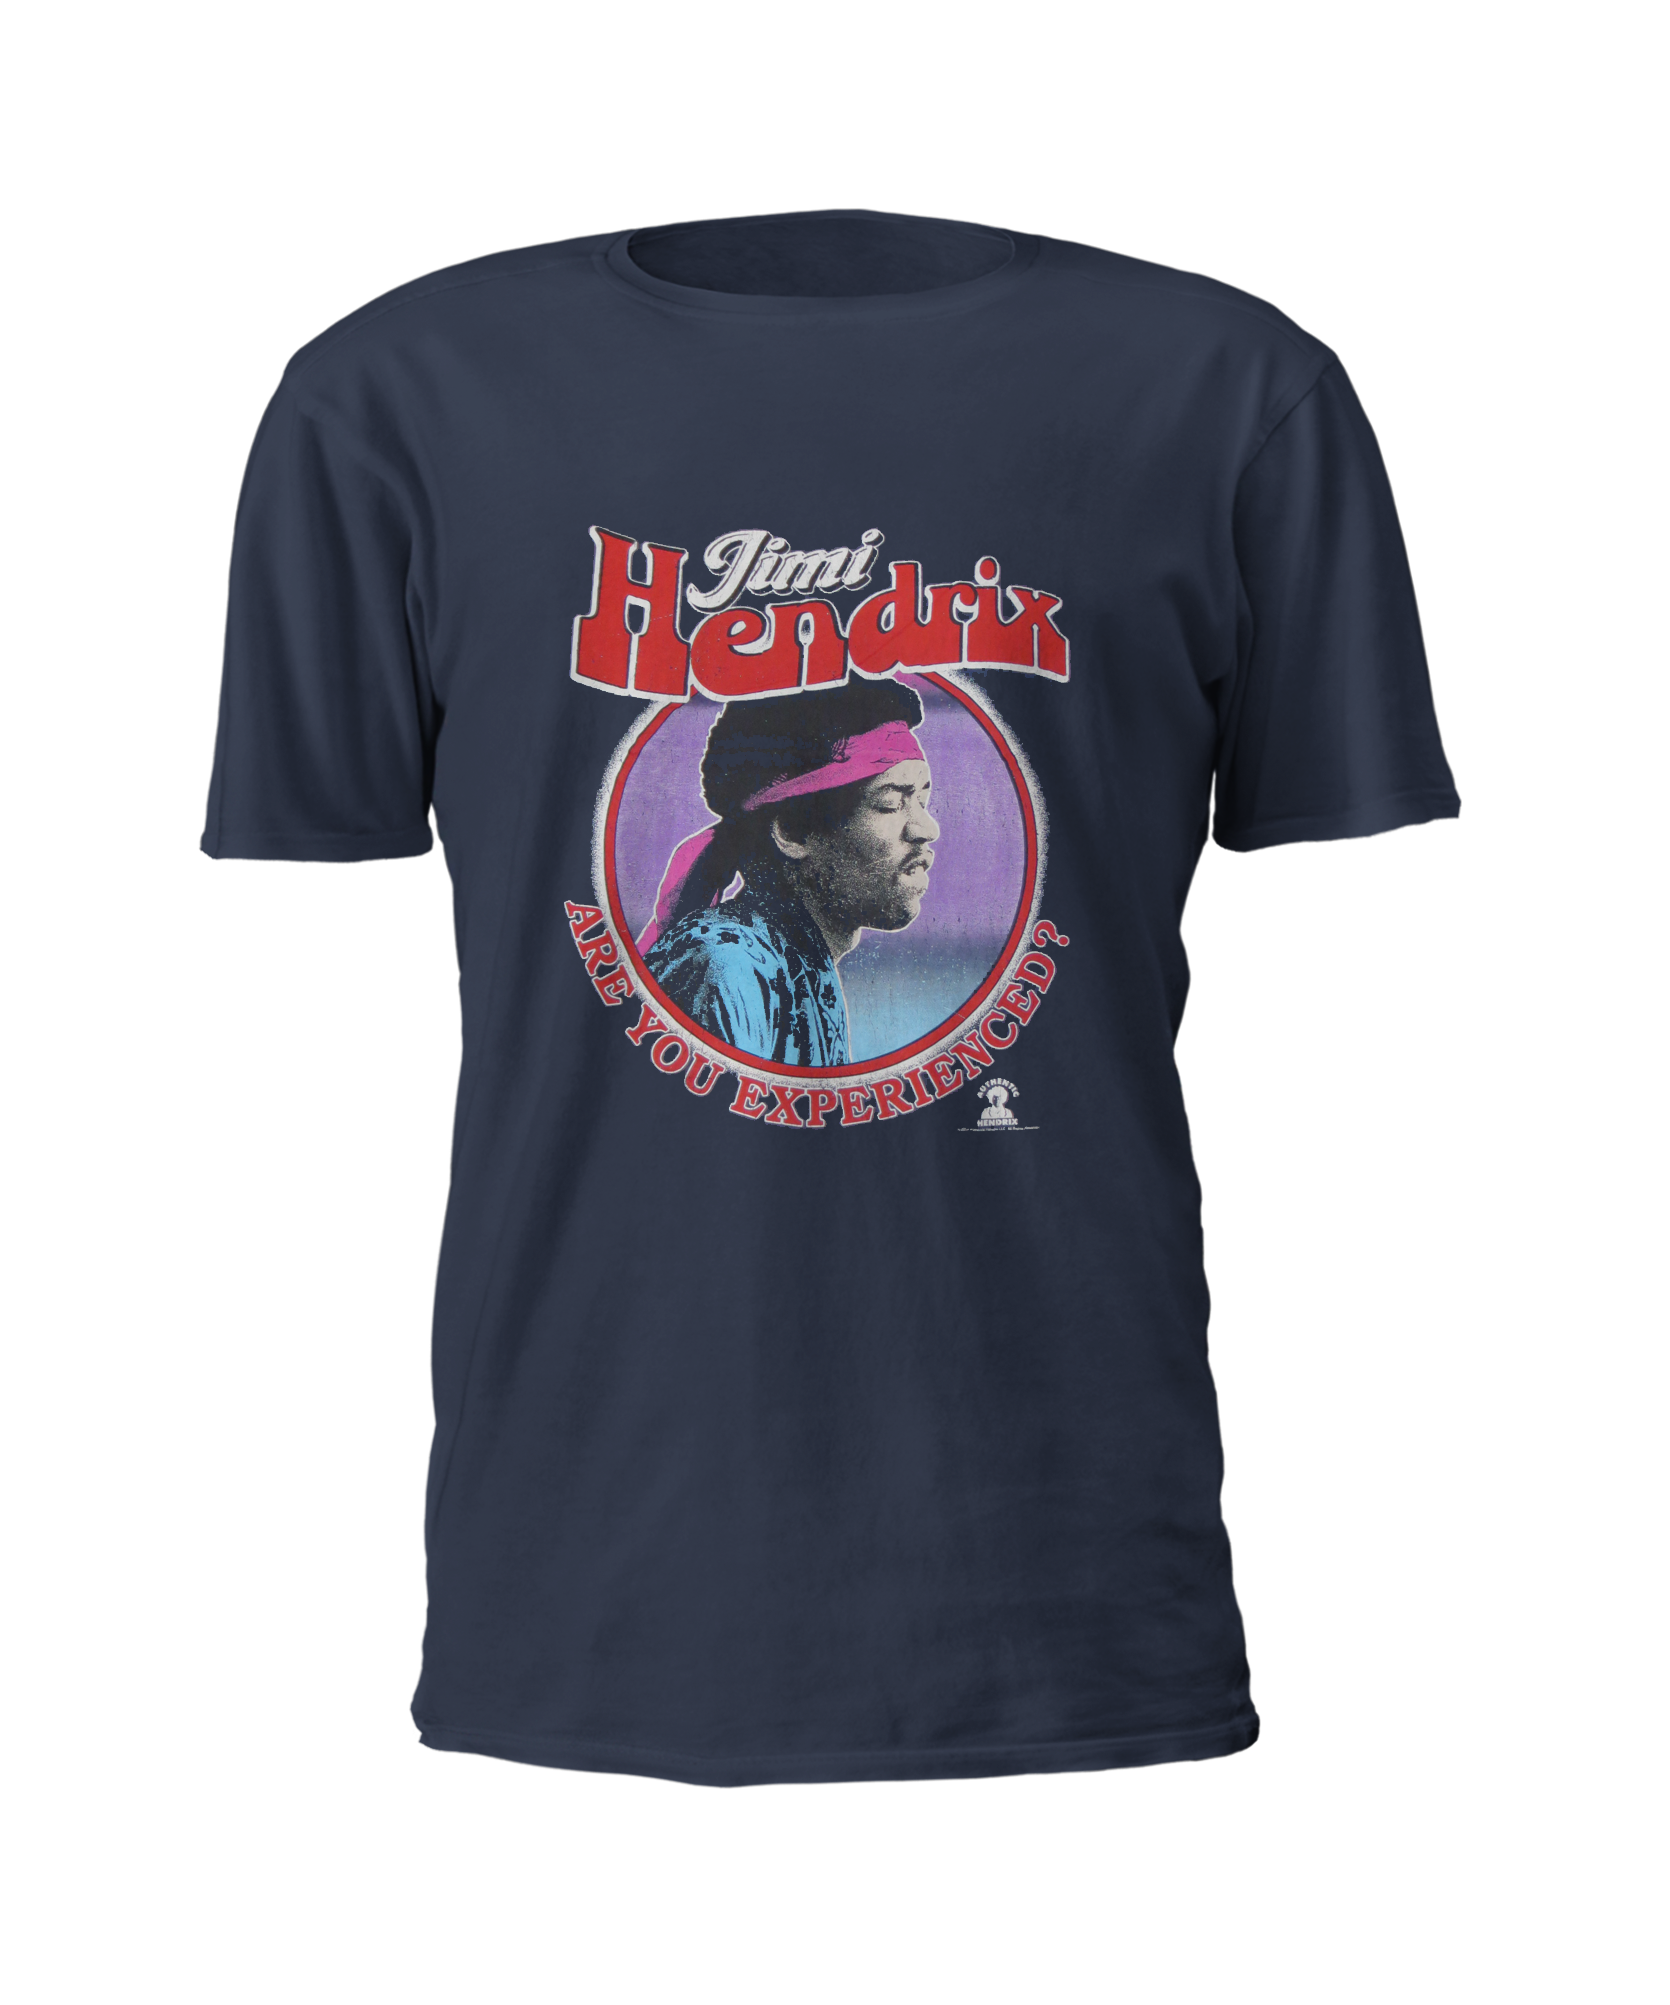 T shirt jimi hendrix are you experienced for Navy blue shirt online